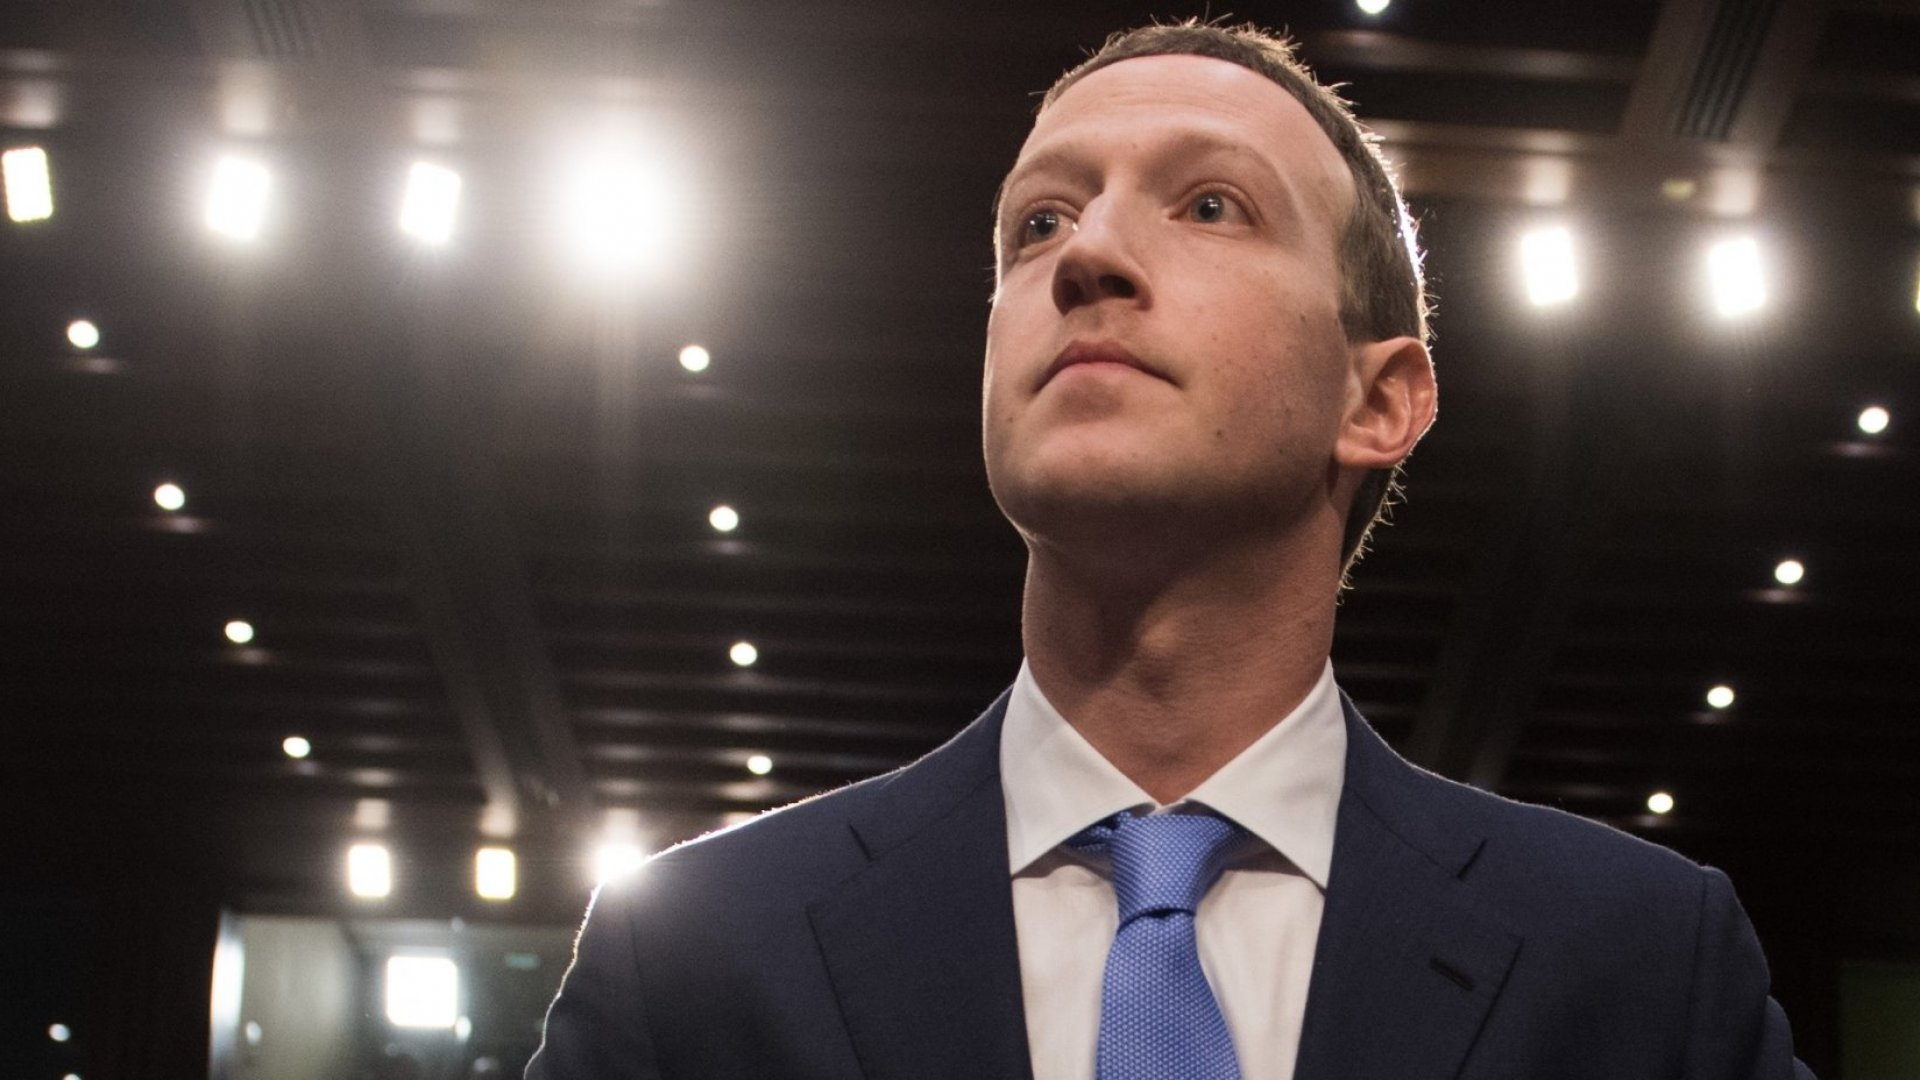 Facebook Says It Disabled Almost 1.3 Billion Fake Accounts. (And the Numbers Only Get More Insane From There)